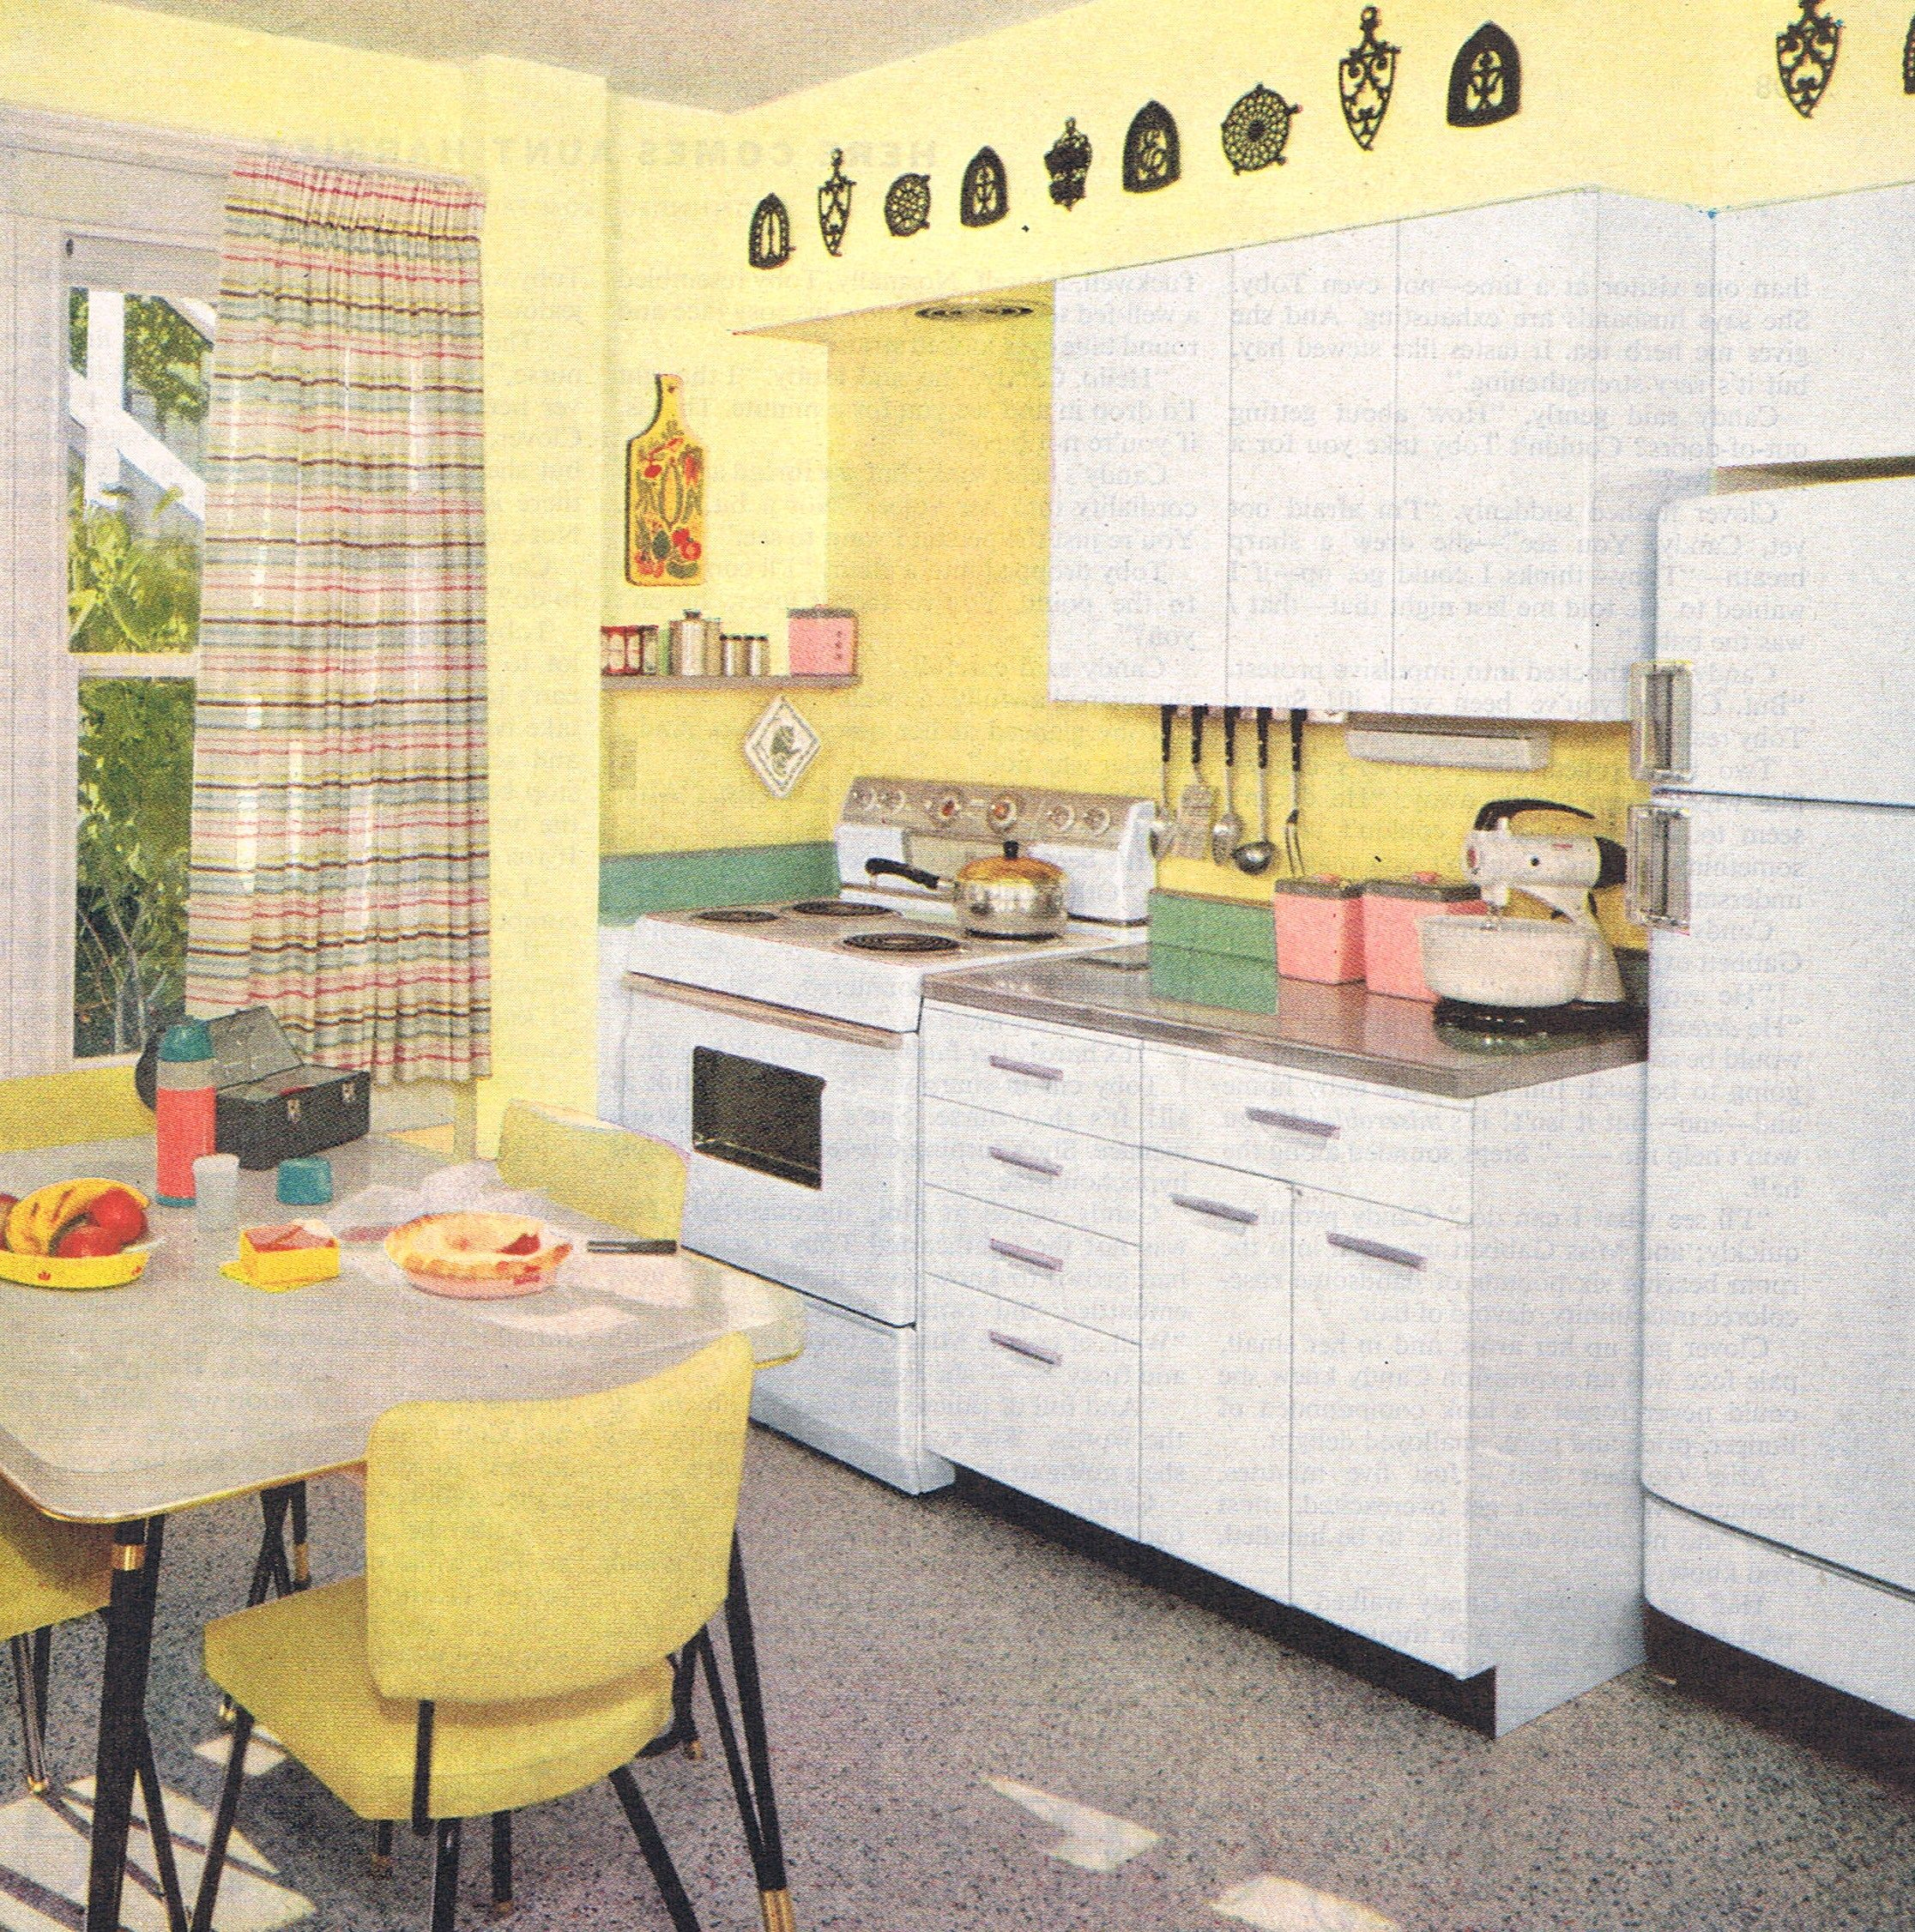 1950s Kitchen Design Bright Kitchen Design 1957 Mid Century Modern Kitchens Mid